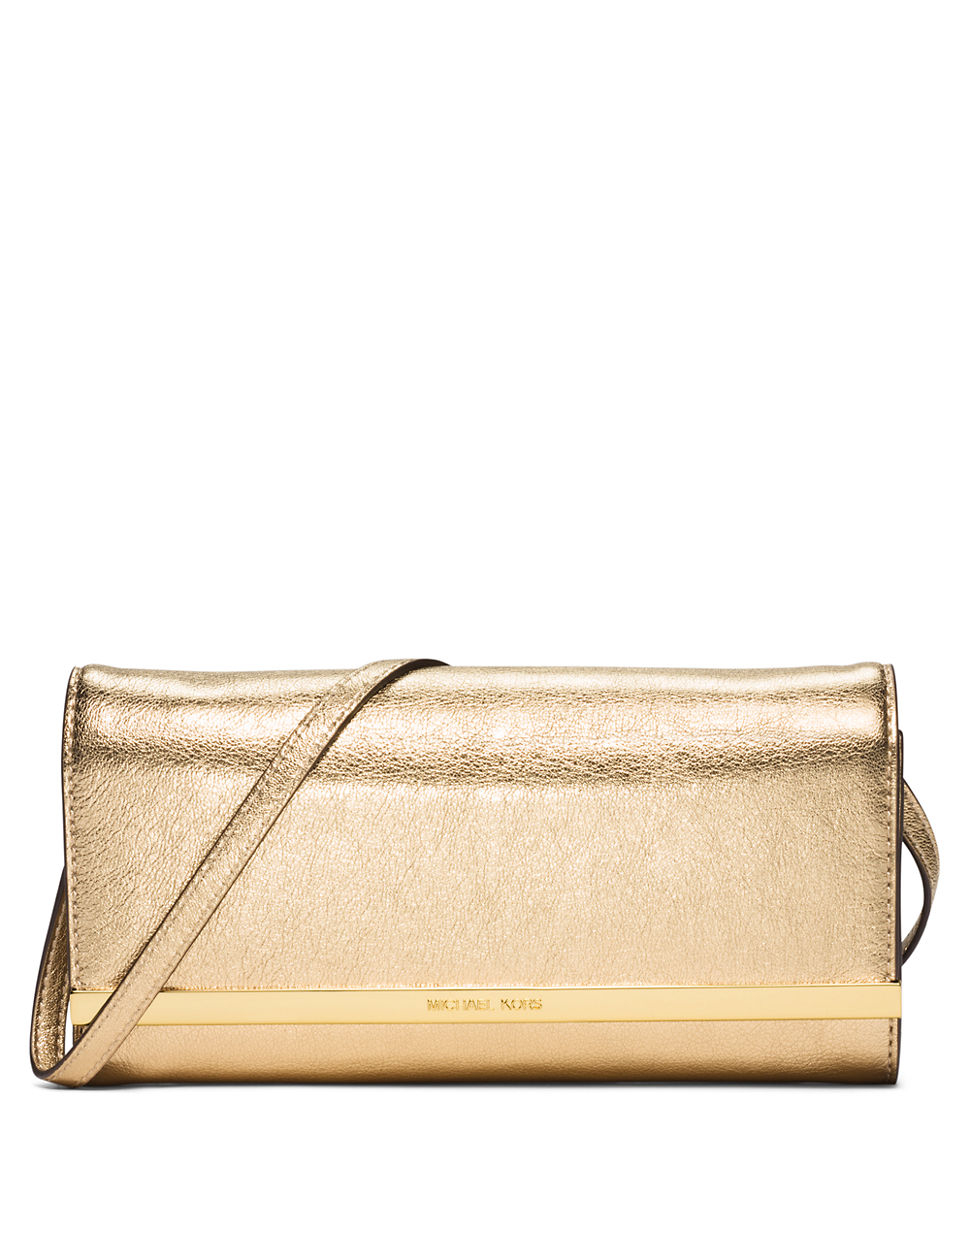 michael michael kors lana leather clutch in gold pale gold lyst. Black Bedroom Furniture Sets. Home Design Ideas